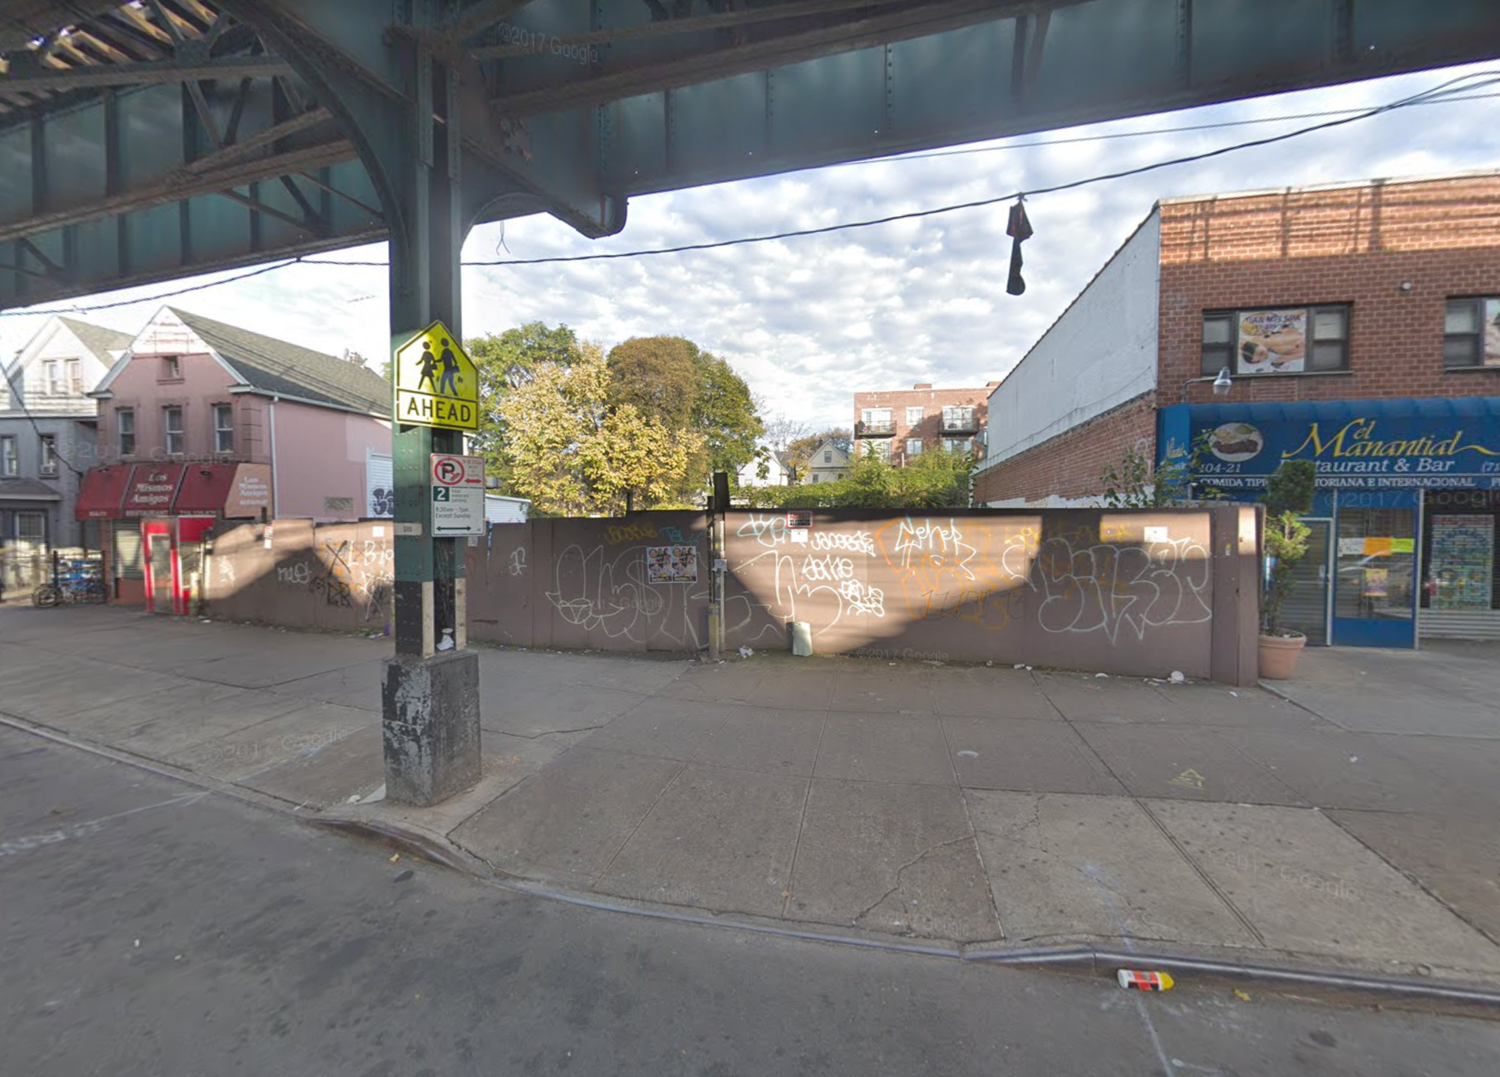 104-19 Roosevelt Avenue, via Google Maps